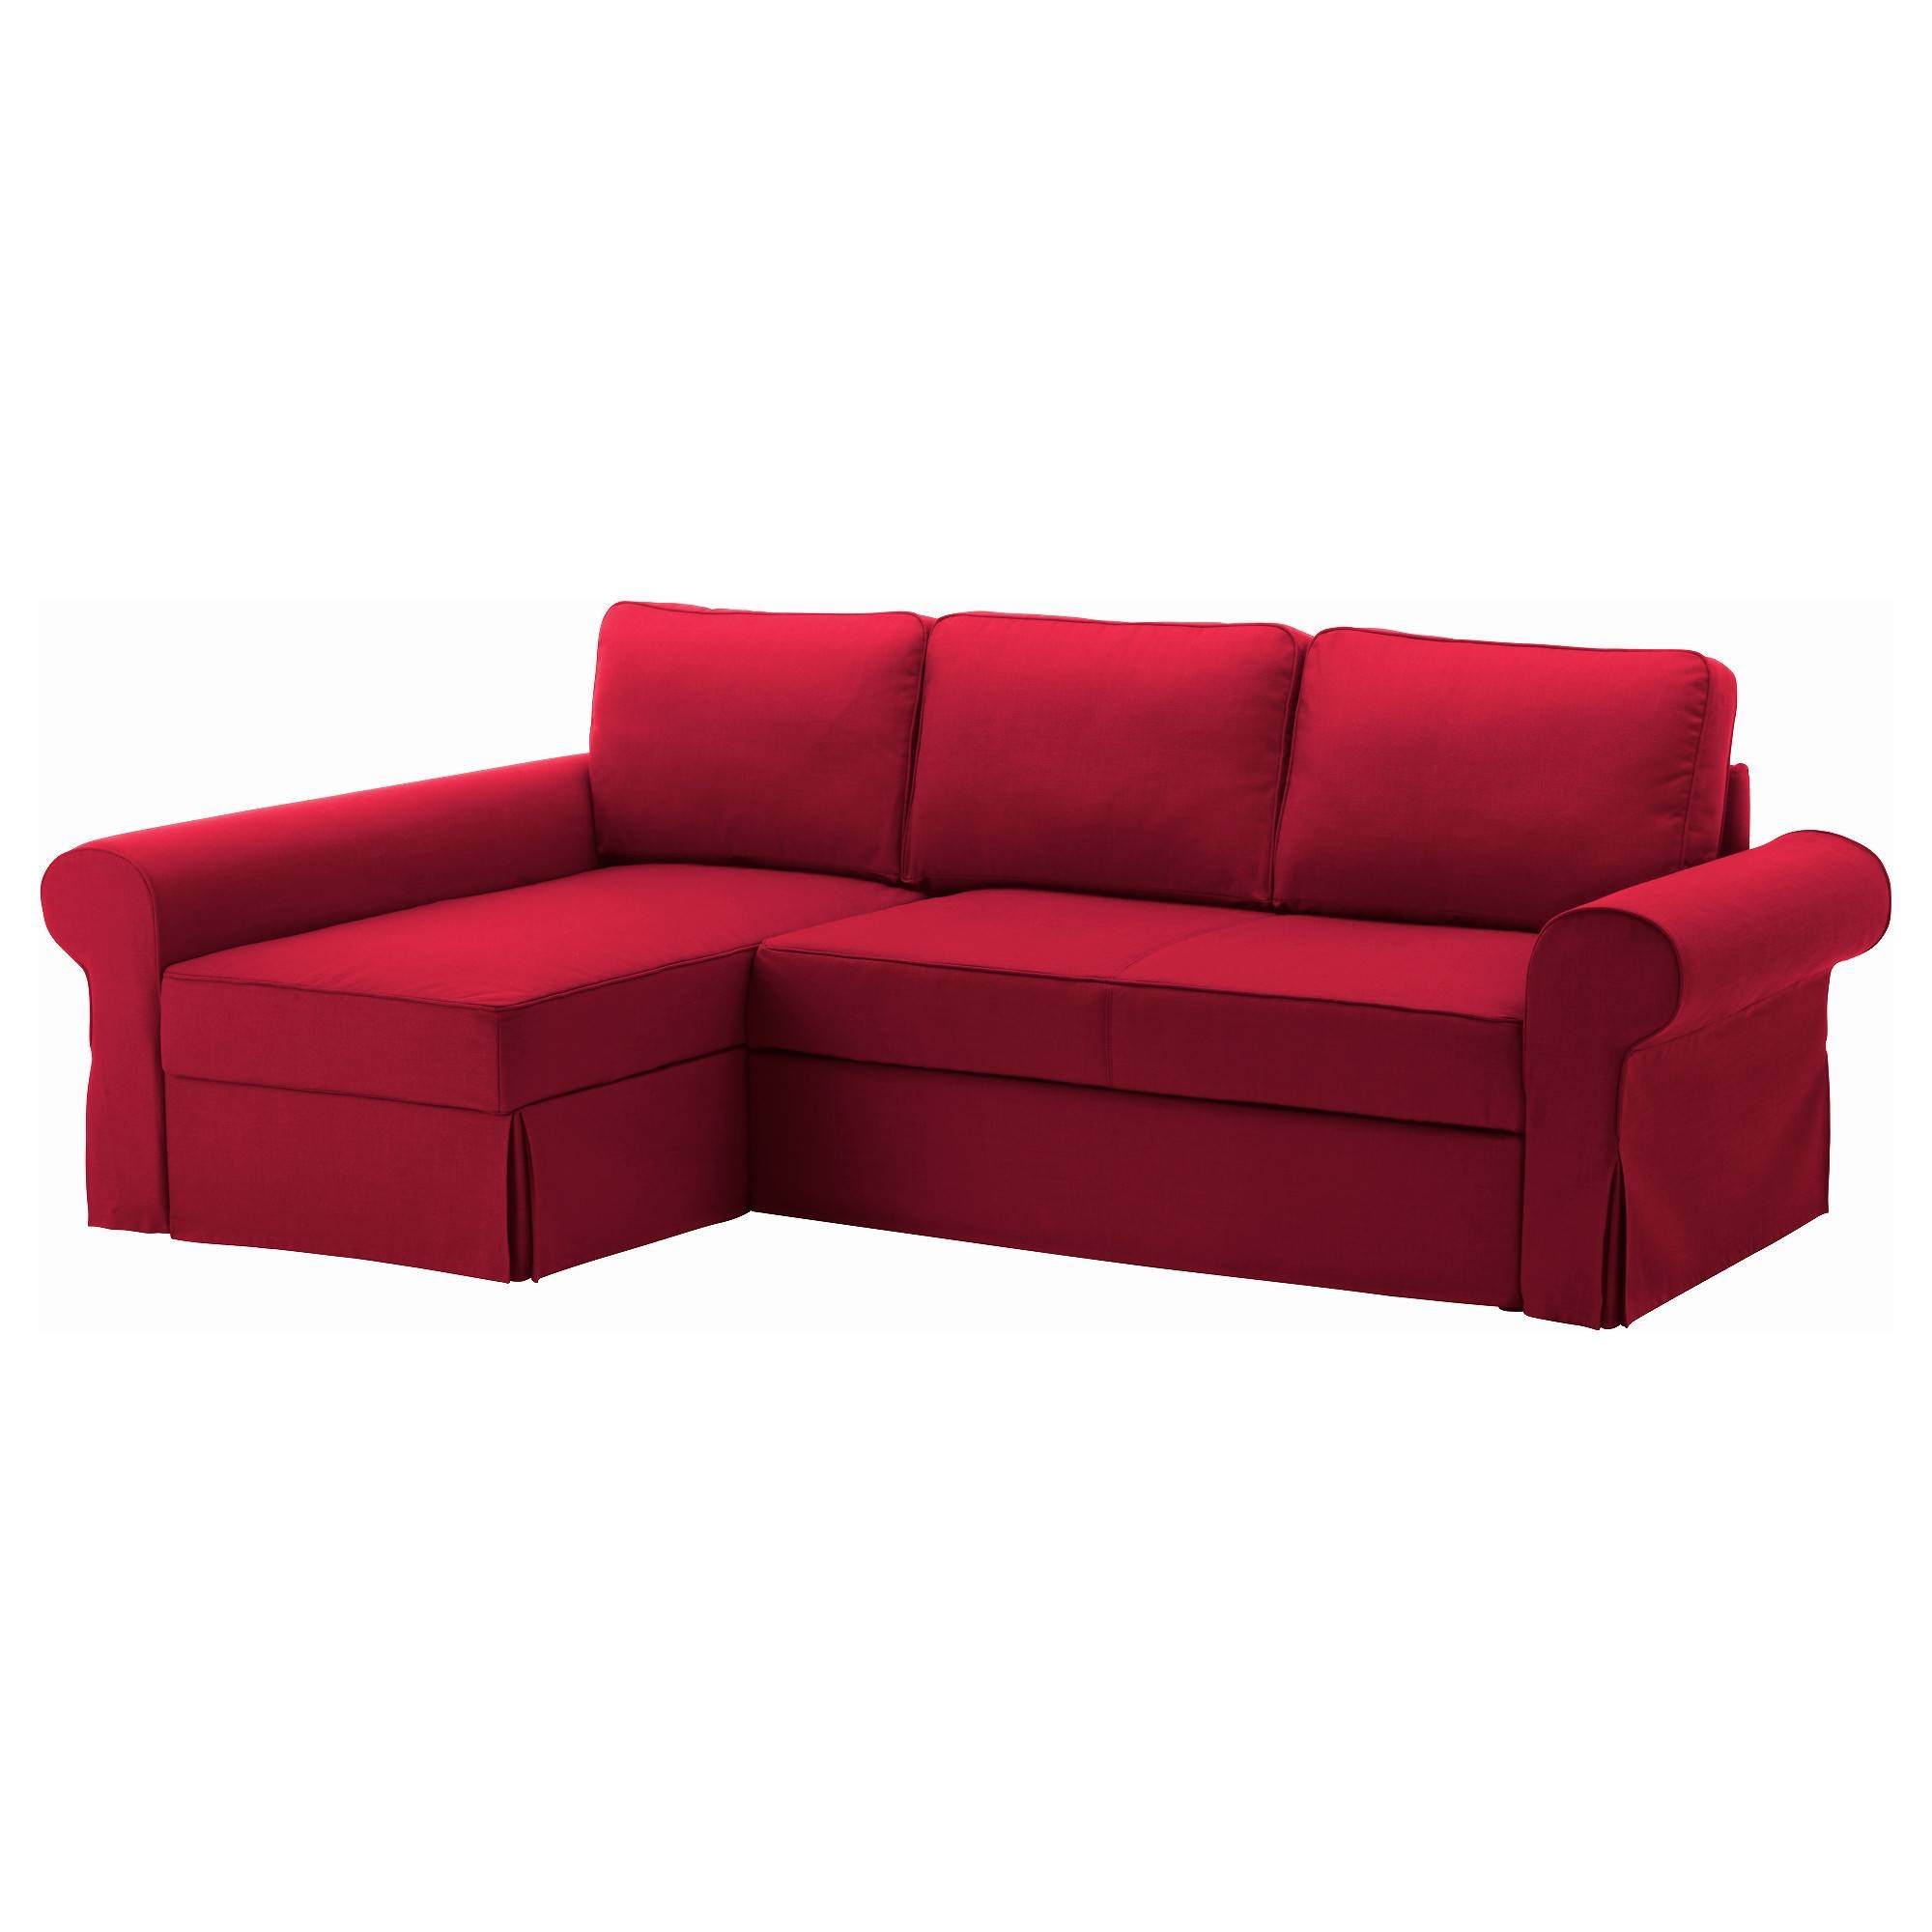 Backabro Sofa Bed With Chaise Longue Nordvalla Red - Ikea pertaining to Ikea Chaise Lounge Sofa (Image 2 of 30)